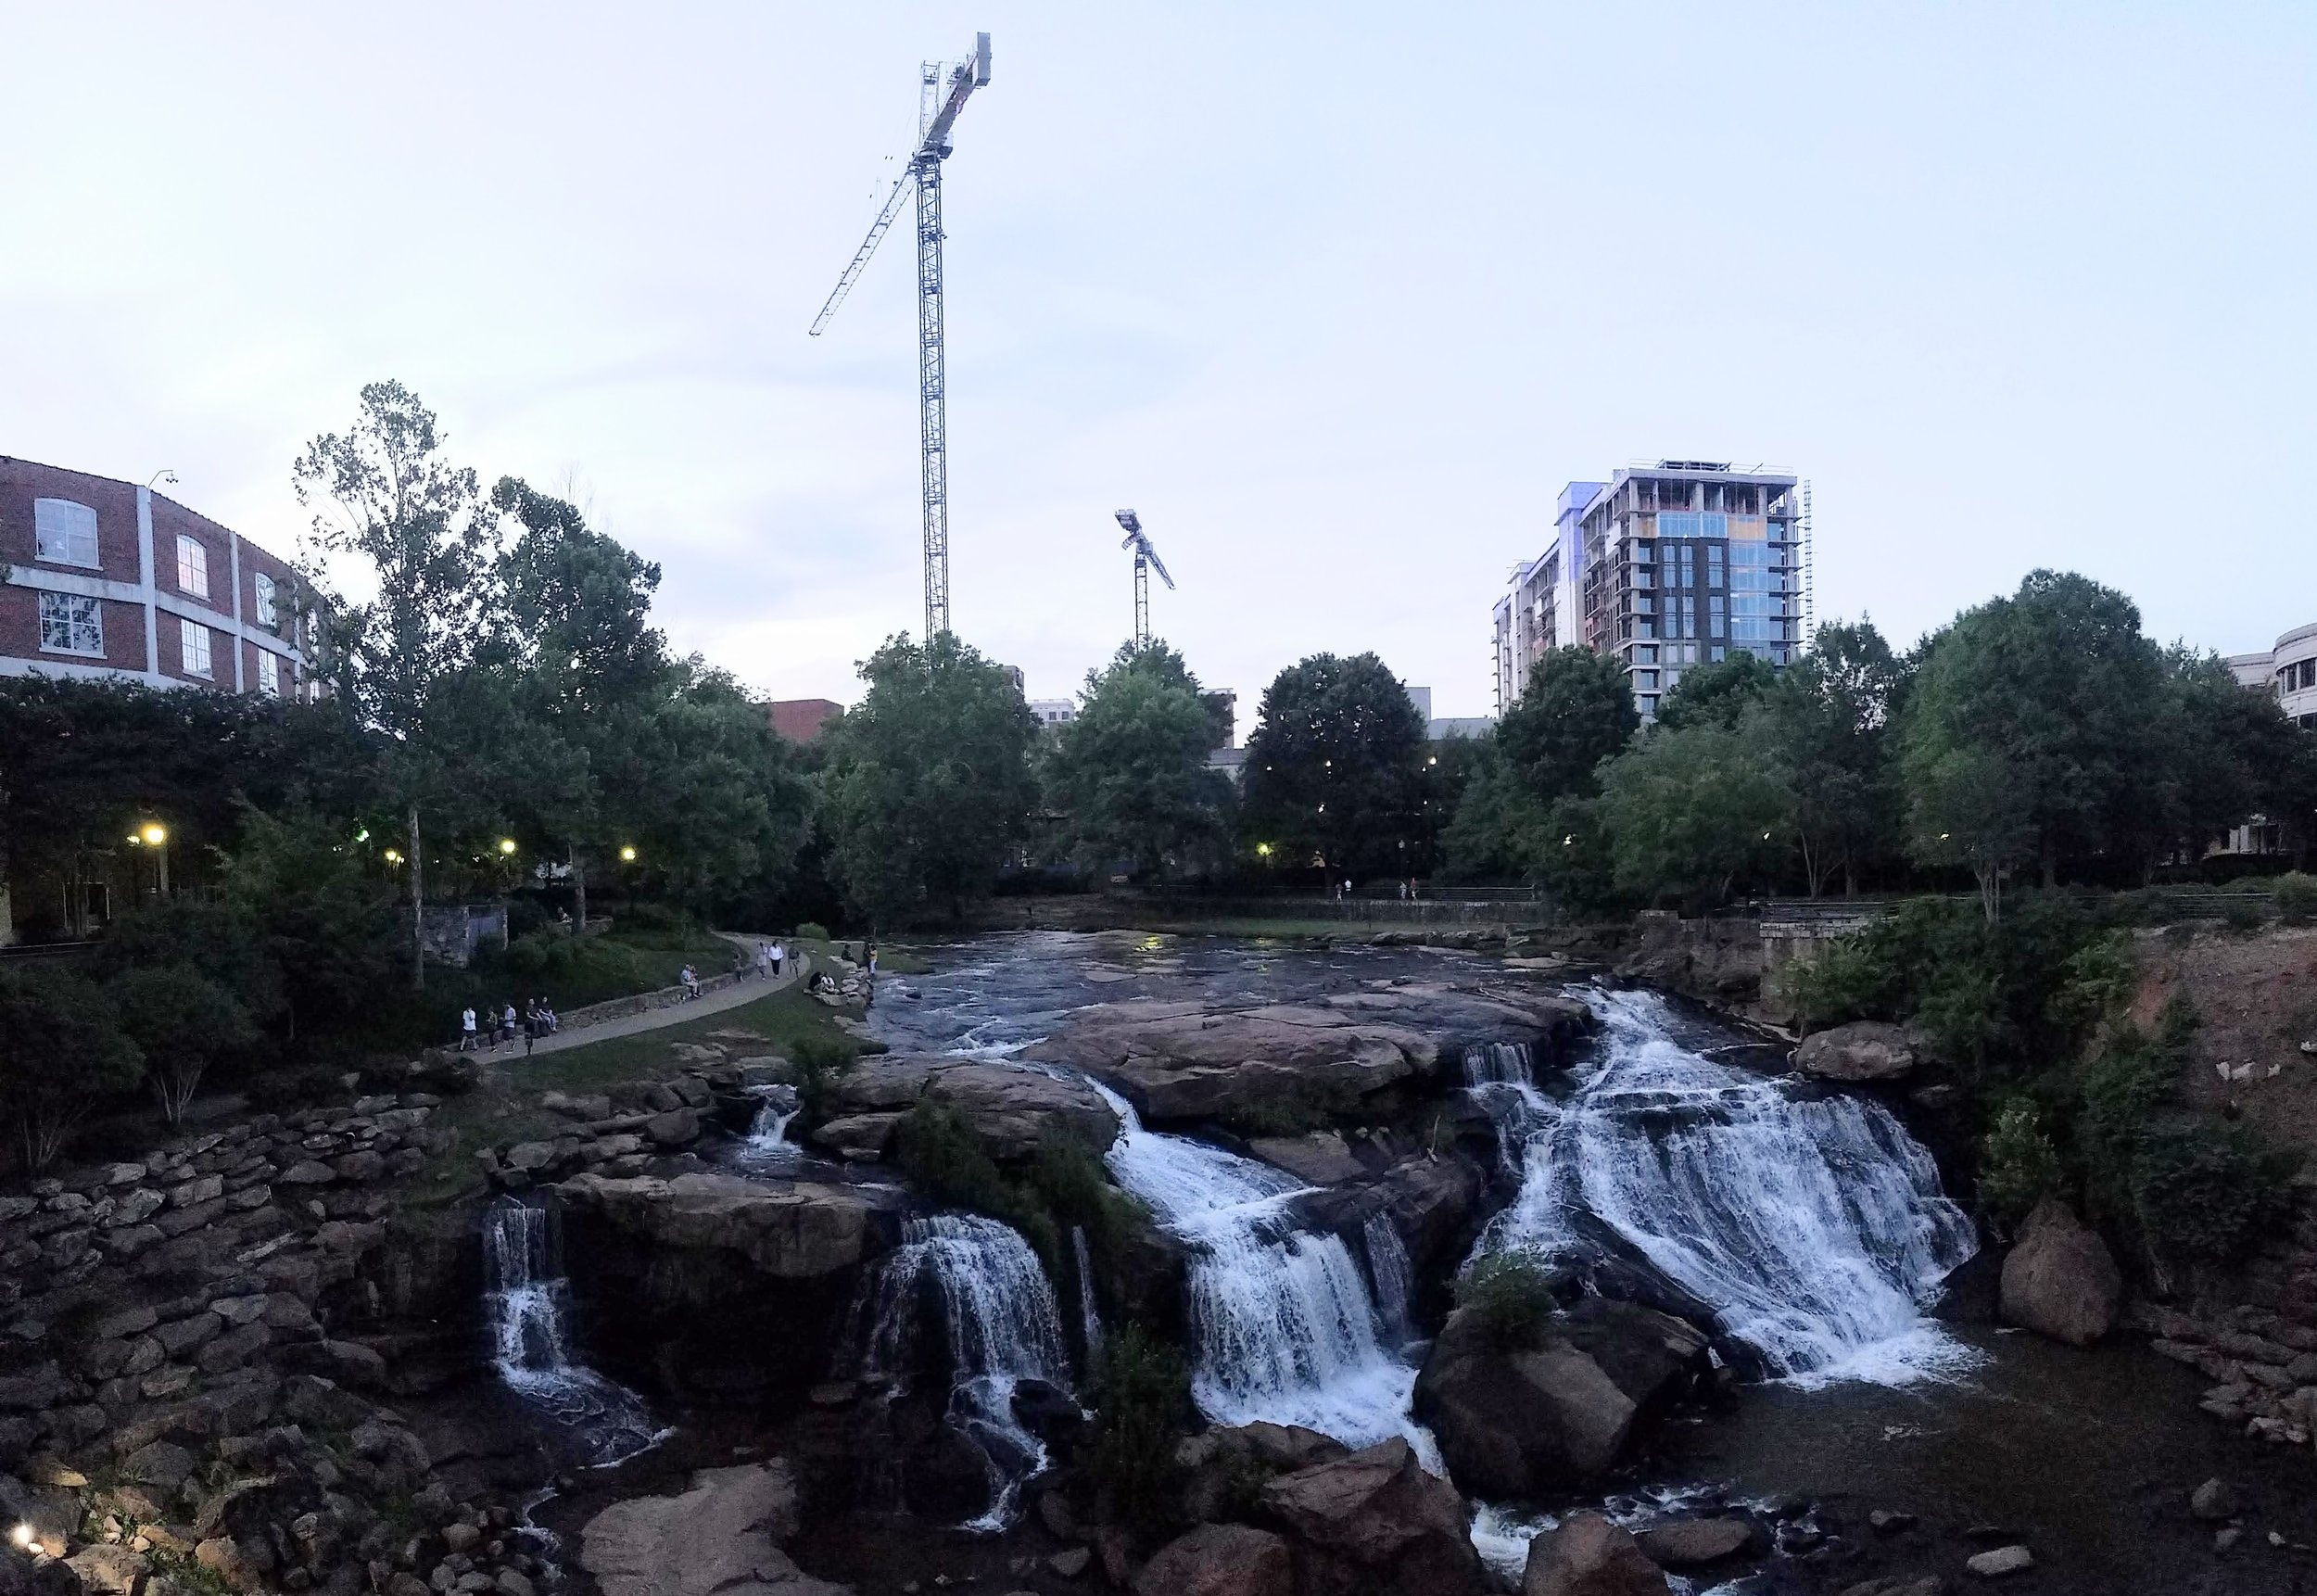 The view from the suspension bridge in Falls Park in downtown Greenville, S.C.